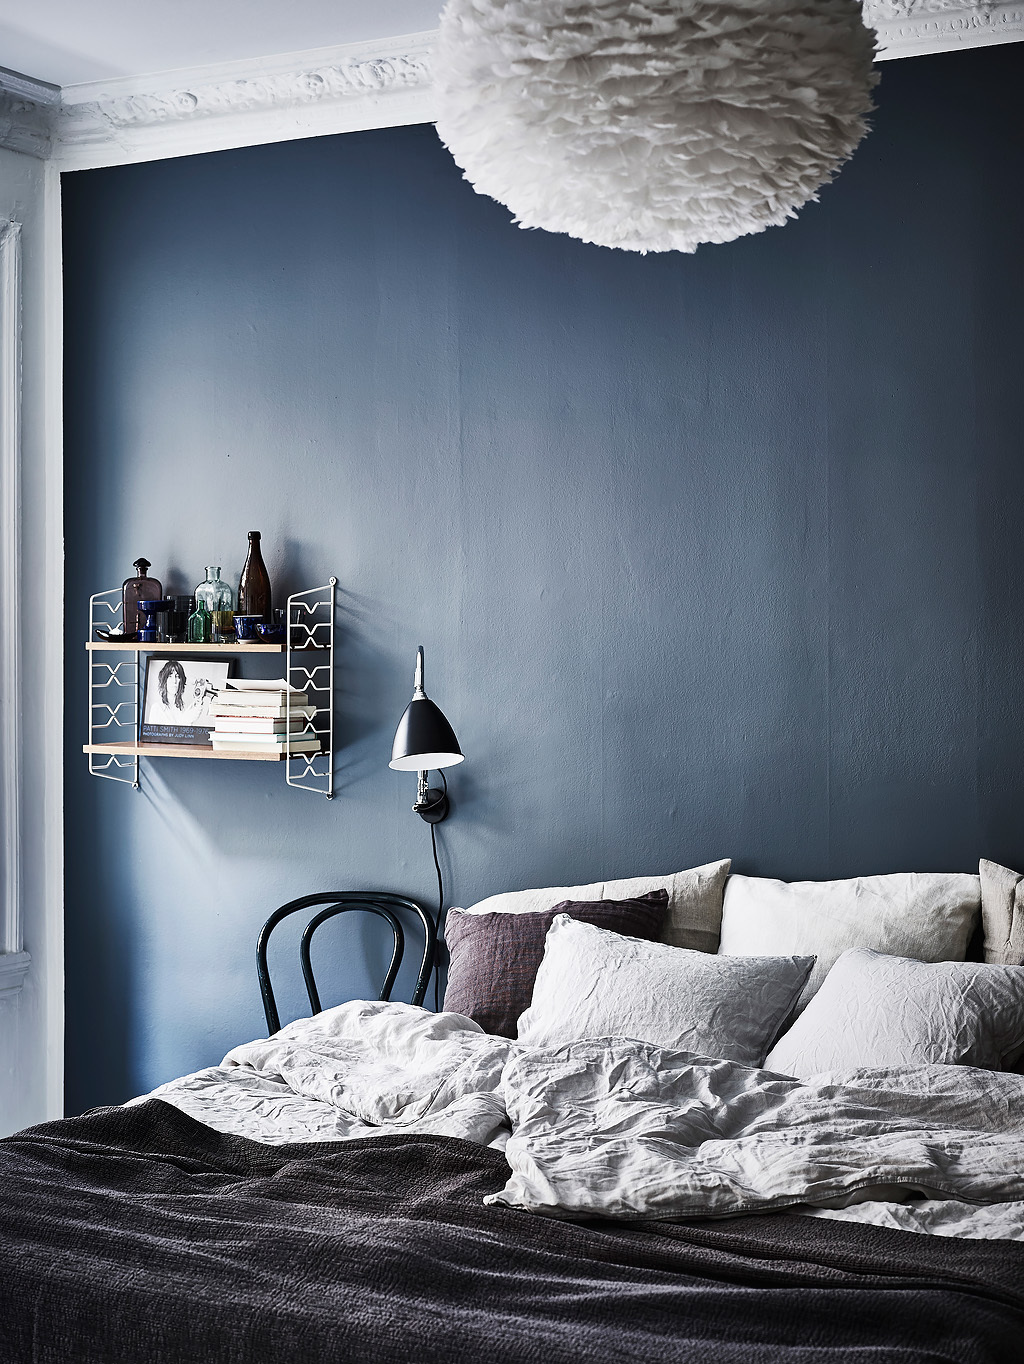 Dreamy Scandi apartment with a stunning deep blue bedroom